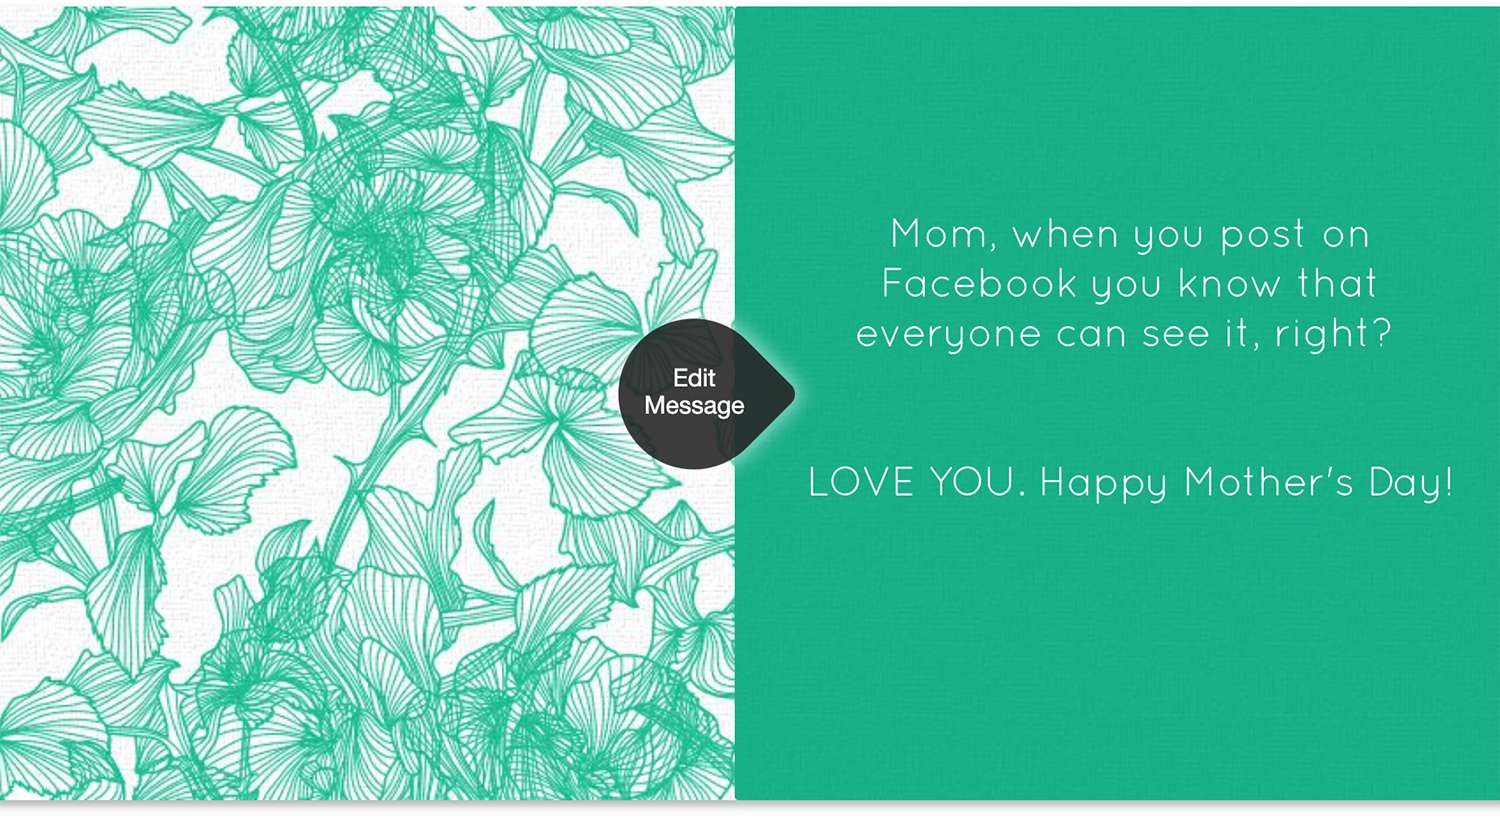 Sweet Blossom customizable e-card message from Punchbowl e-card website.